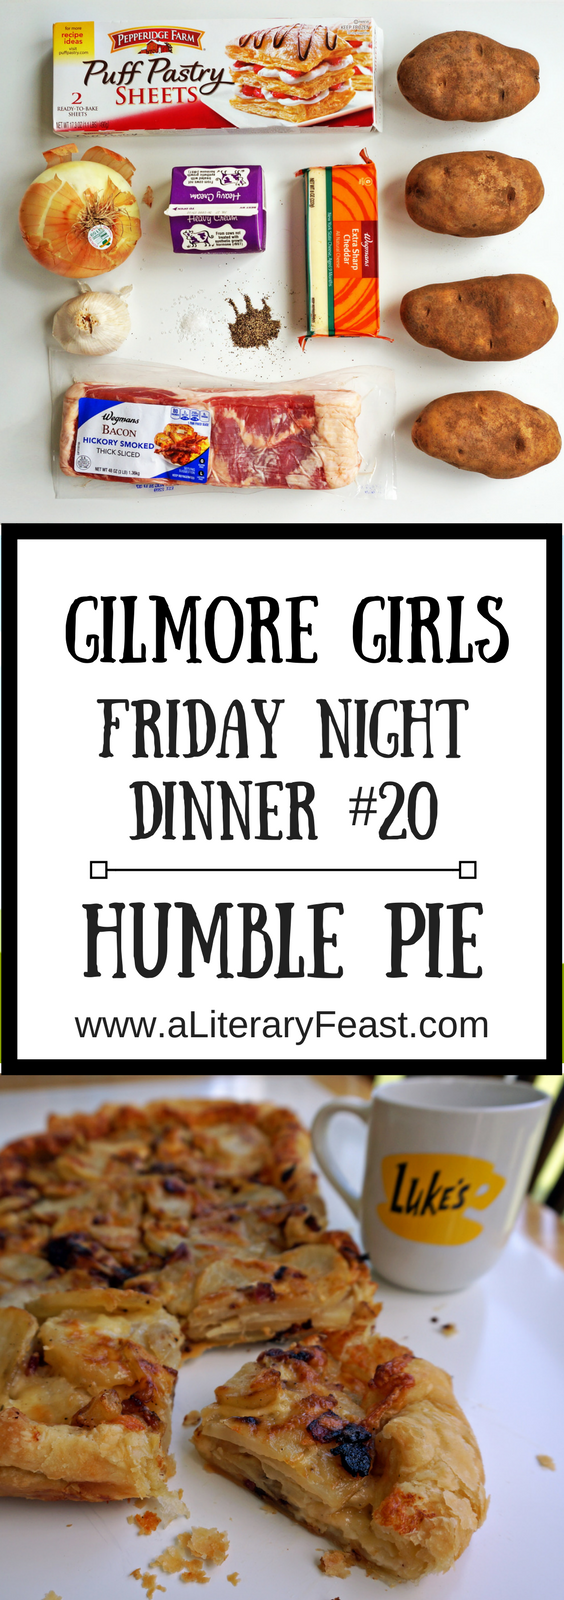 dinner ideas for 20 guests. a literary feast | gilmore girls friday night dinner guest poster laura (mom ideas for 20 guests